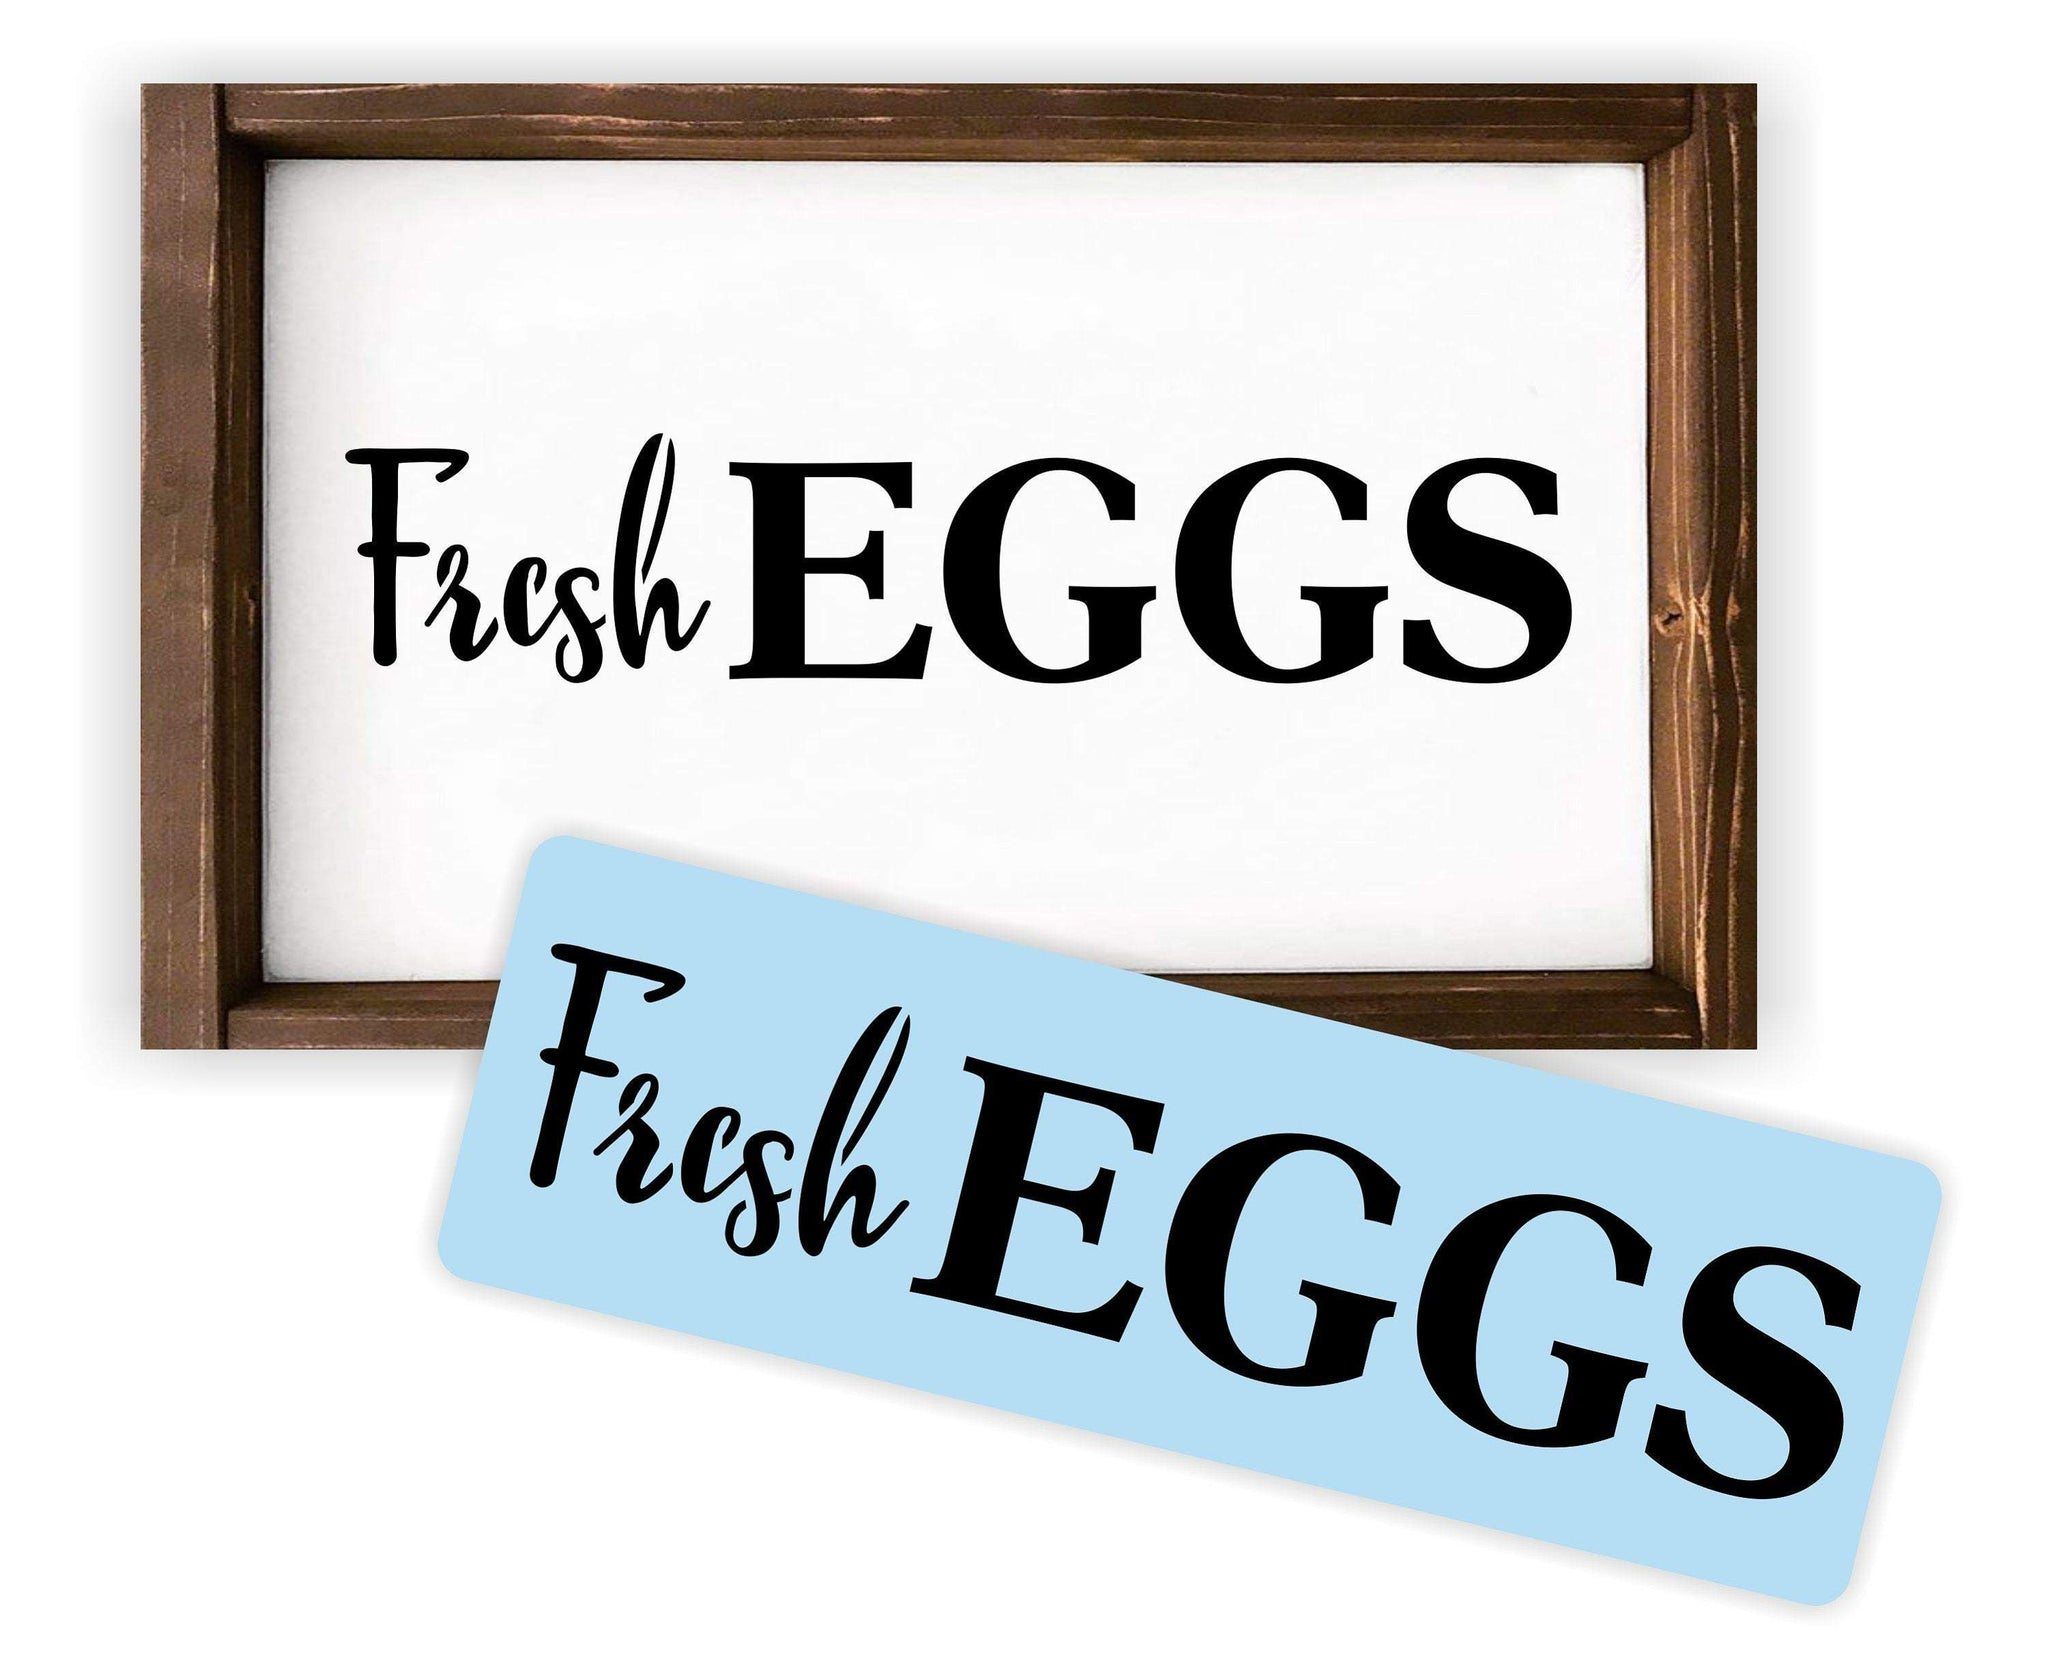 Fresh Eggs Stencil  - Paint Your Own Wood Sign - Reusable & Sturdy